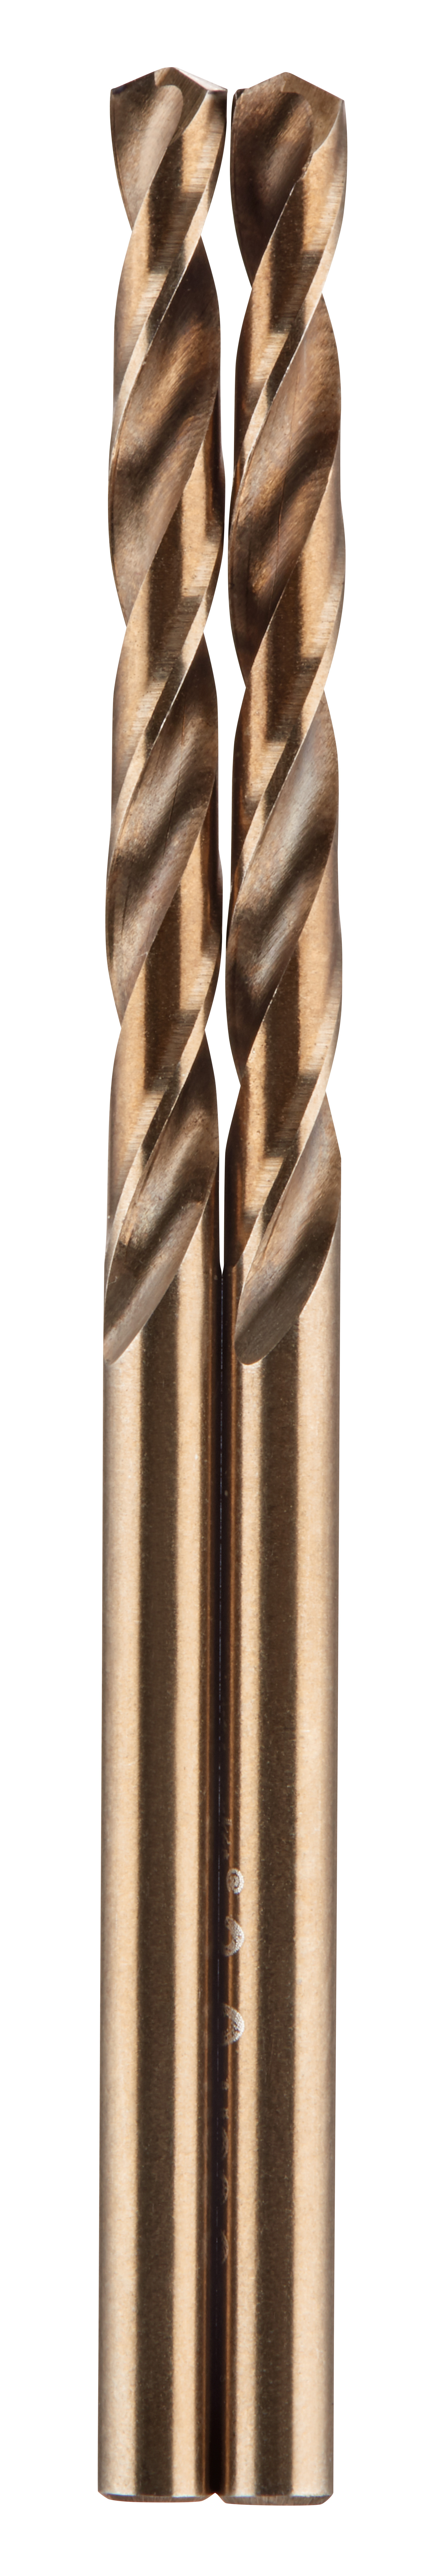 Milwaukee® RED HELIX™ 48-89-2505 Drill Bit, 3 mm Drill - Metric, 0.1181 in Drill - Decimal Inch, 135 deg Point, Cobalt, Black Oxide